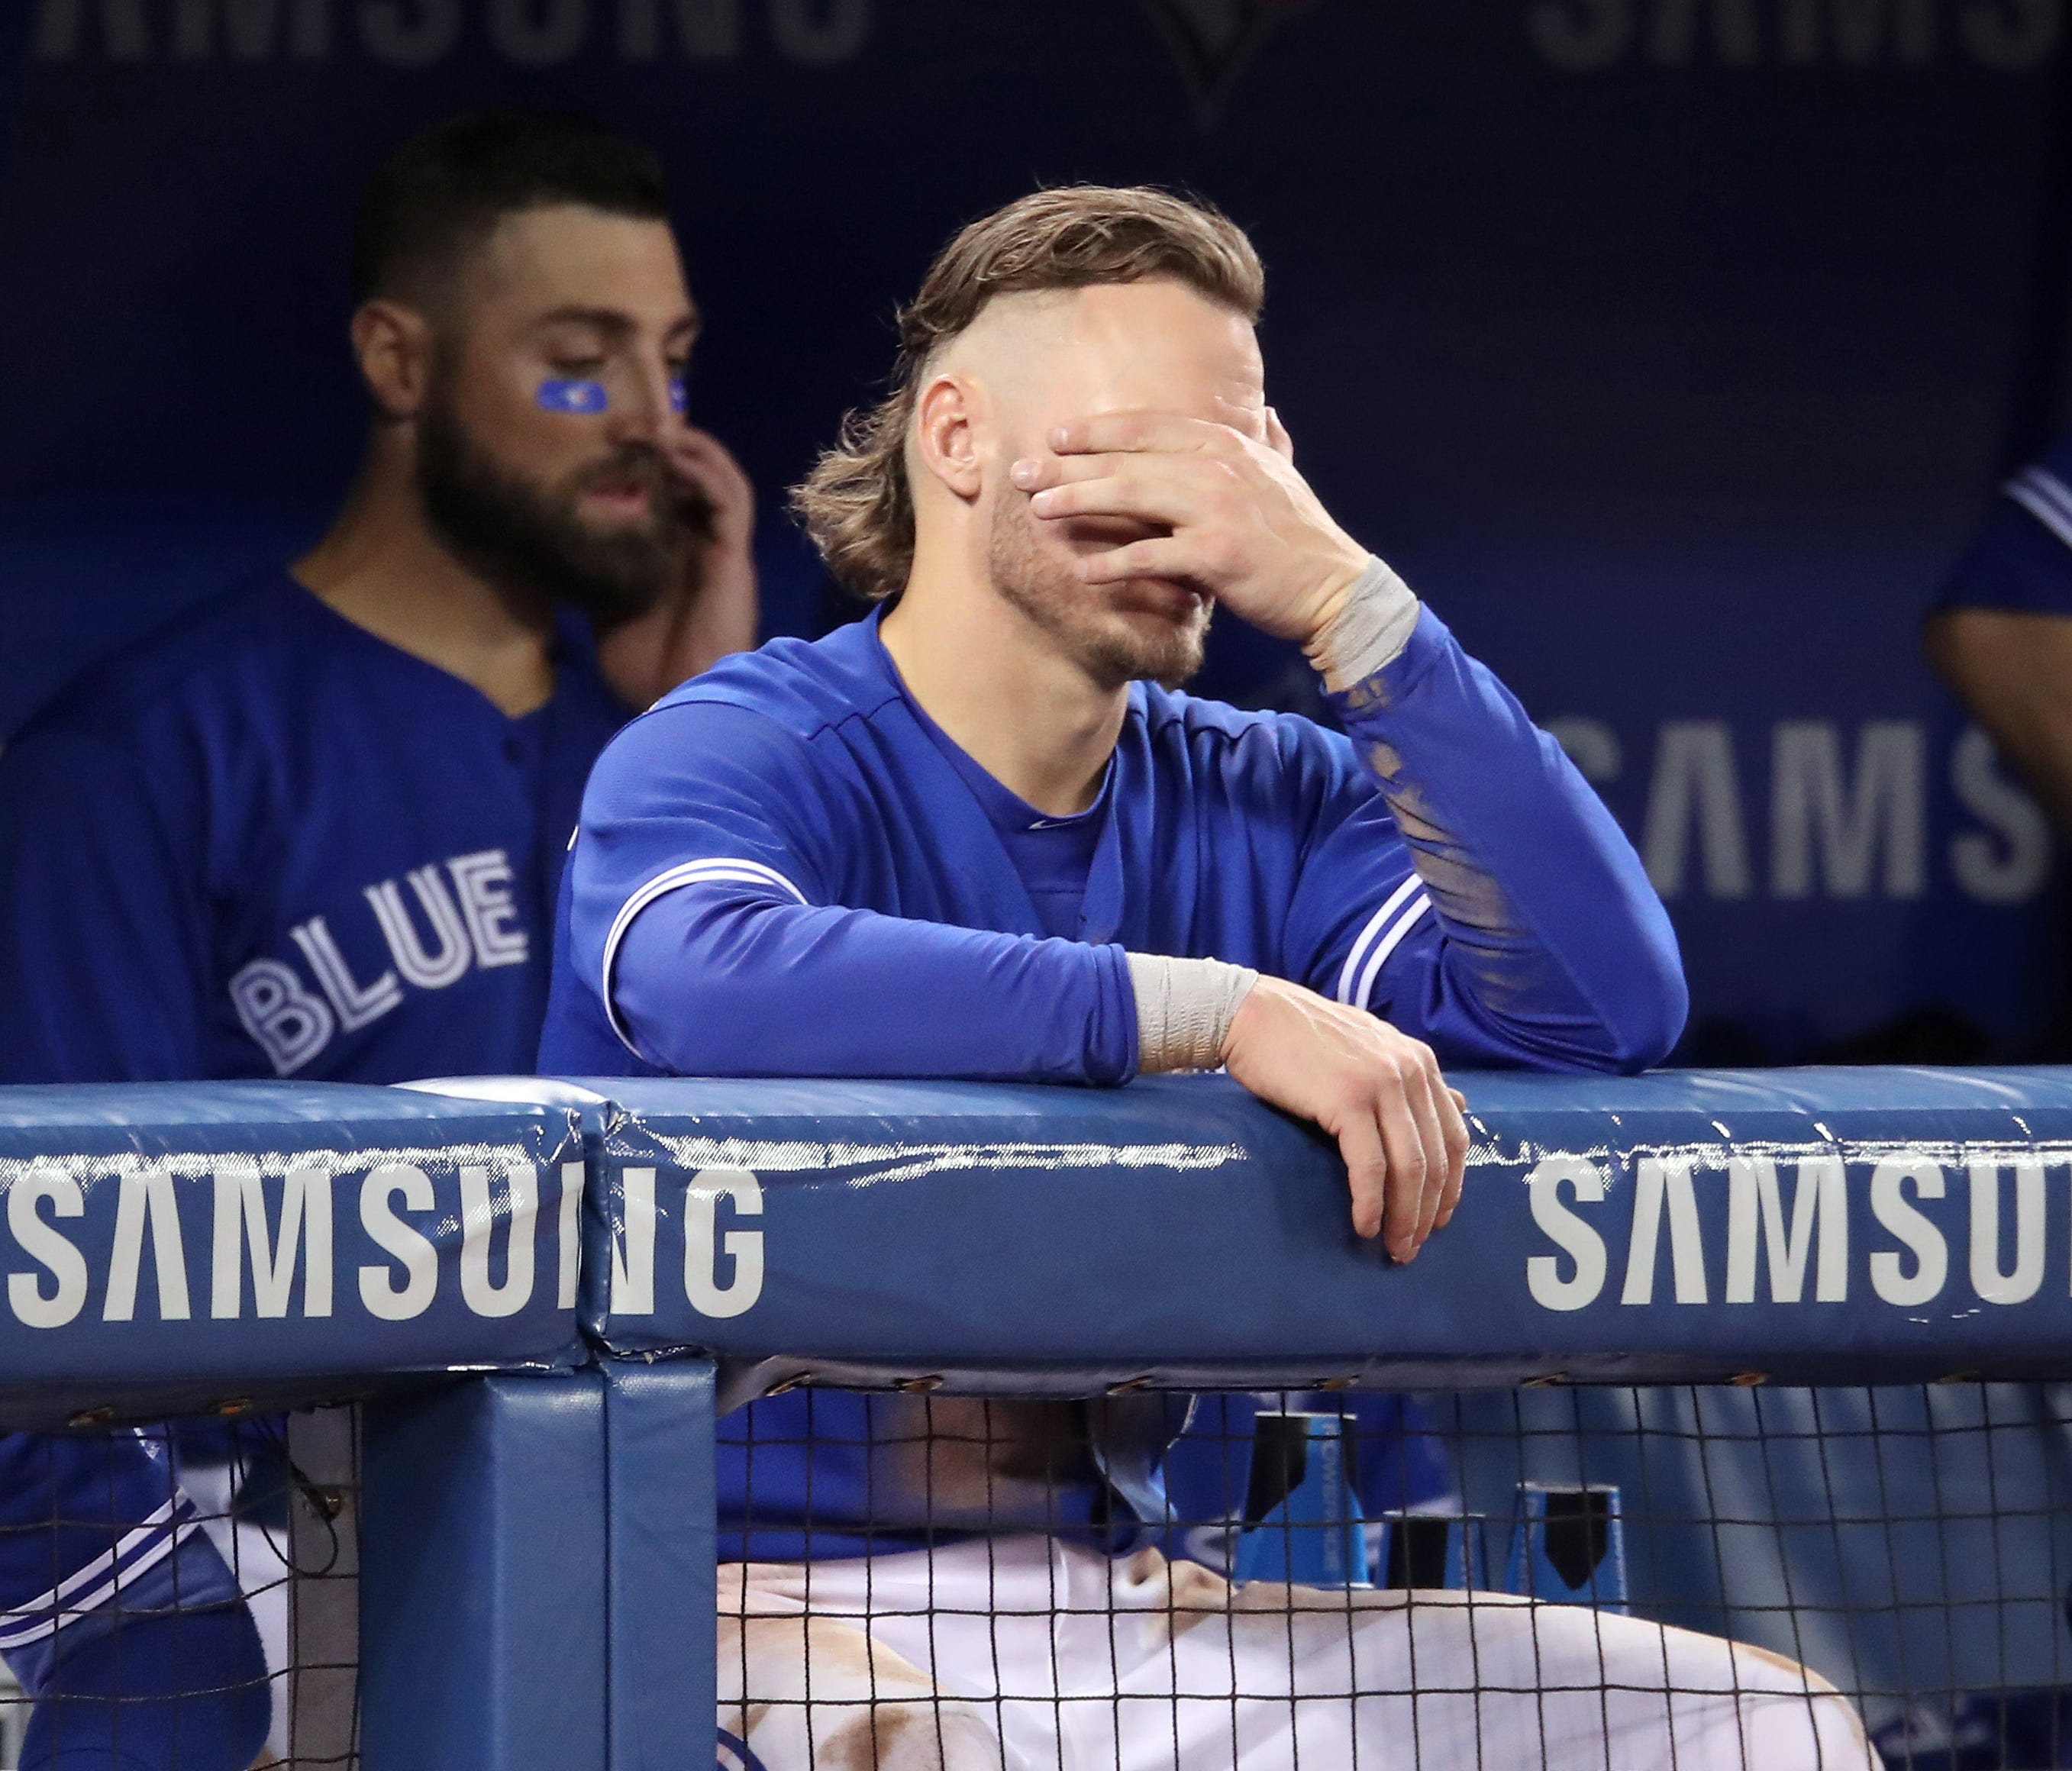 Josh Donaldson of the Blue Jays has been hampered by a shoulder injury and is batting just .234.